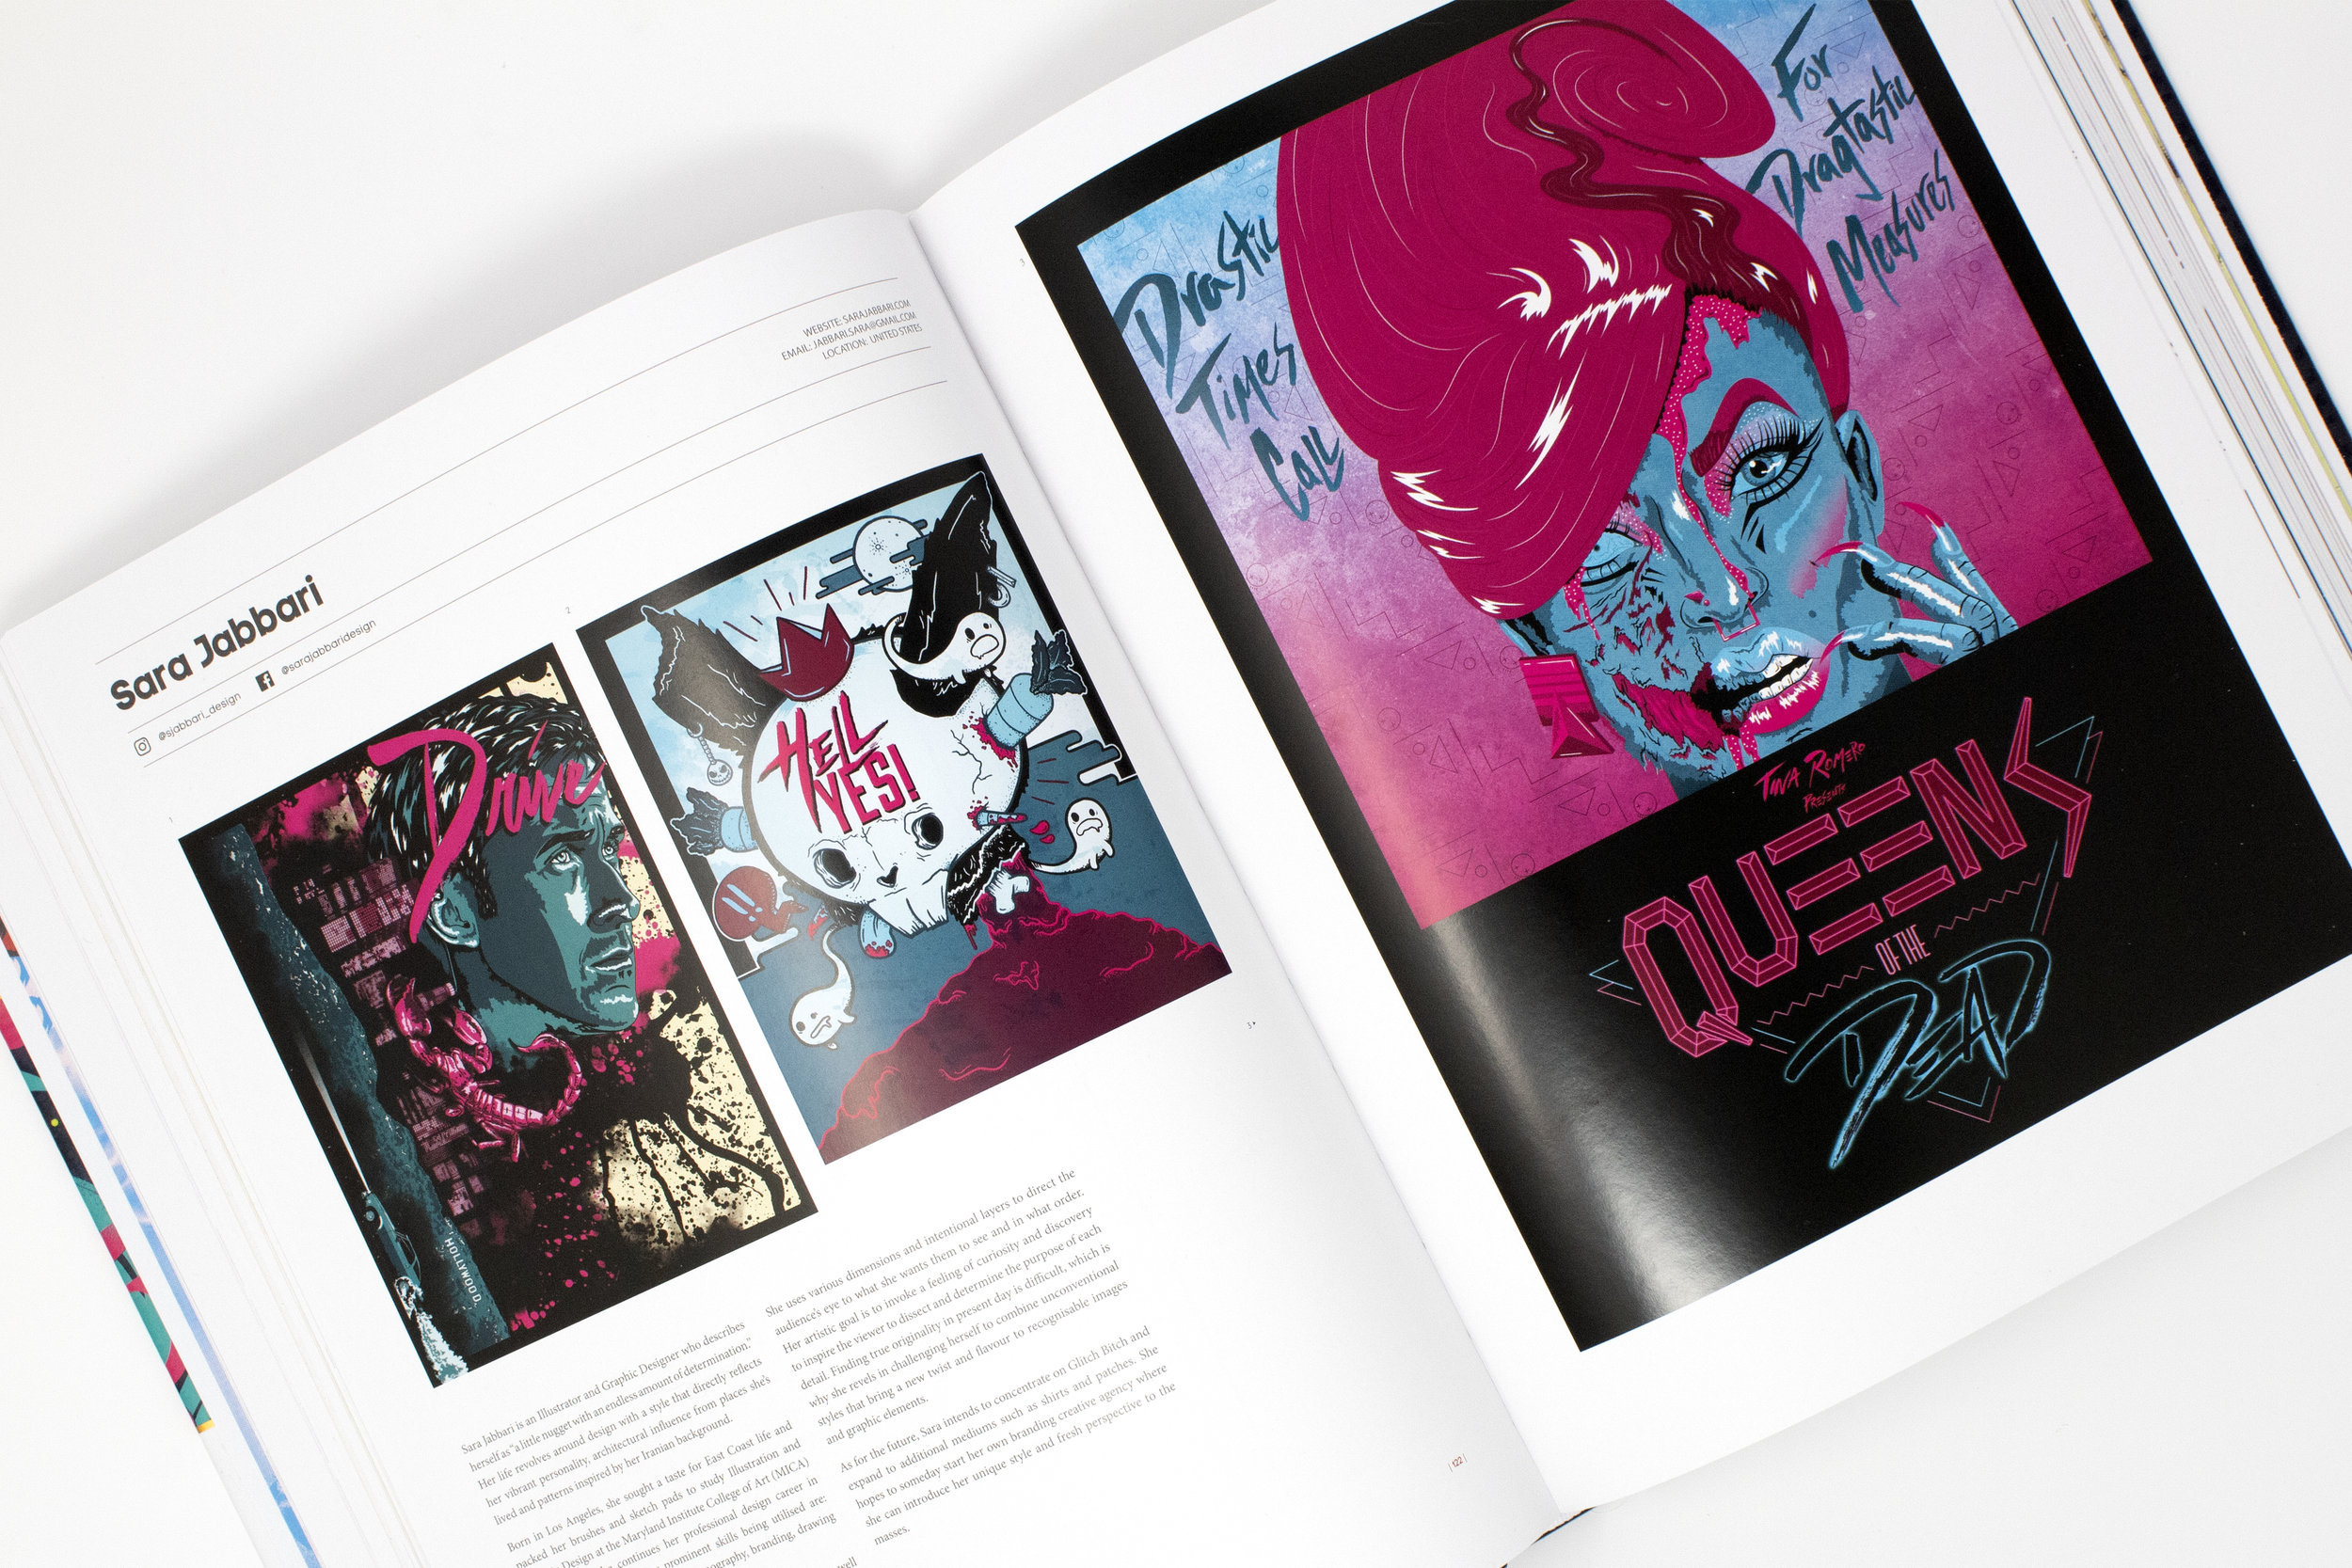 PUBLICATIONS - DRAWN VOL. 2 | CAPSULES BOOKDrawn Volume.2 is a curated creative directory by Capsules Book showcasing portfolio highlights of some of the best established and emerging illustrators worldwide.